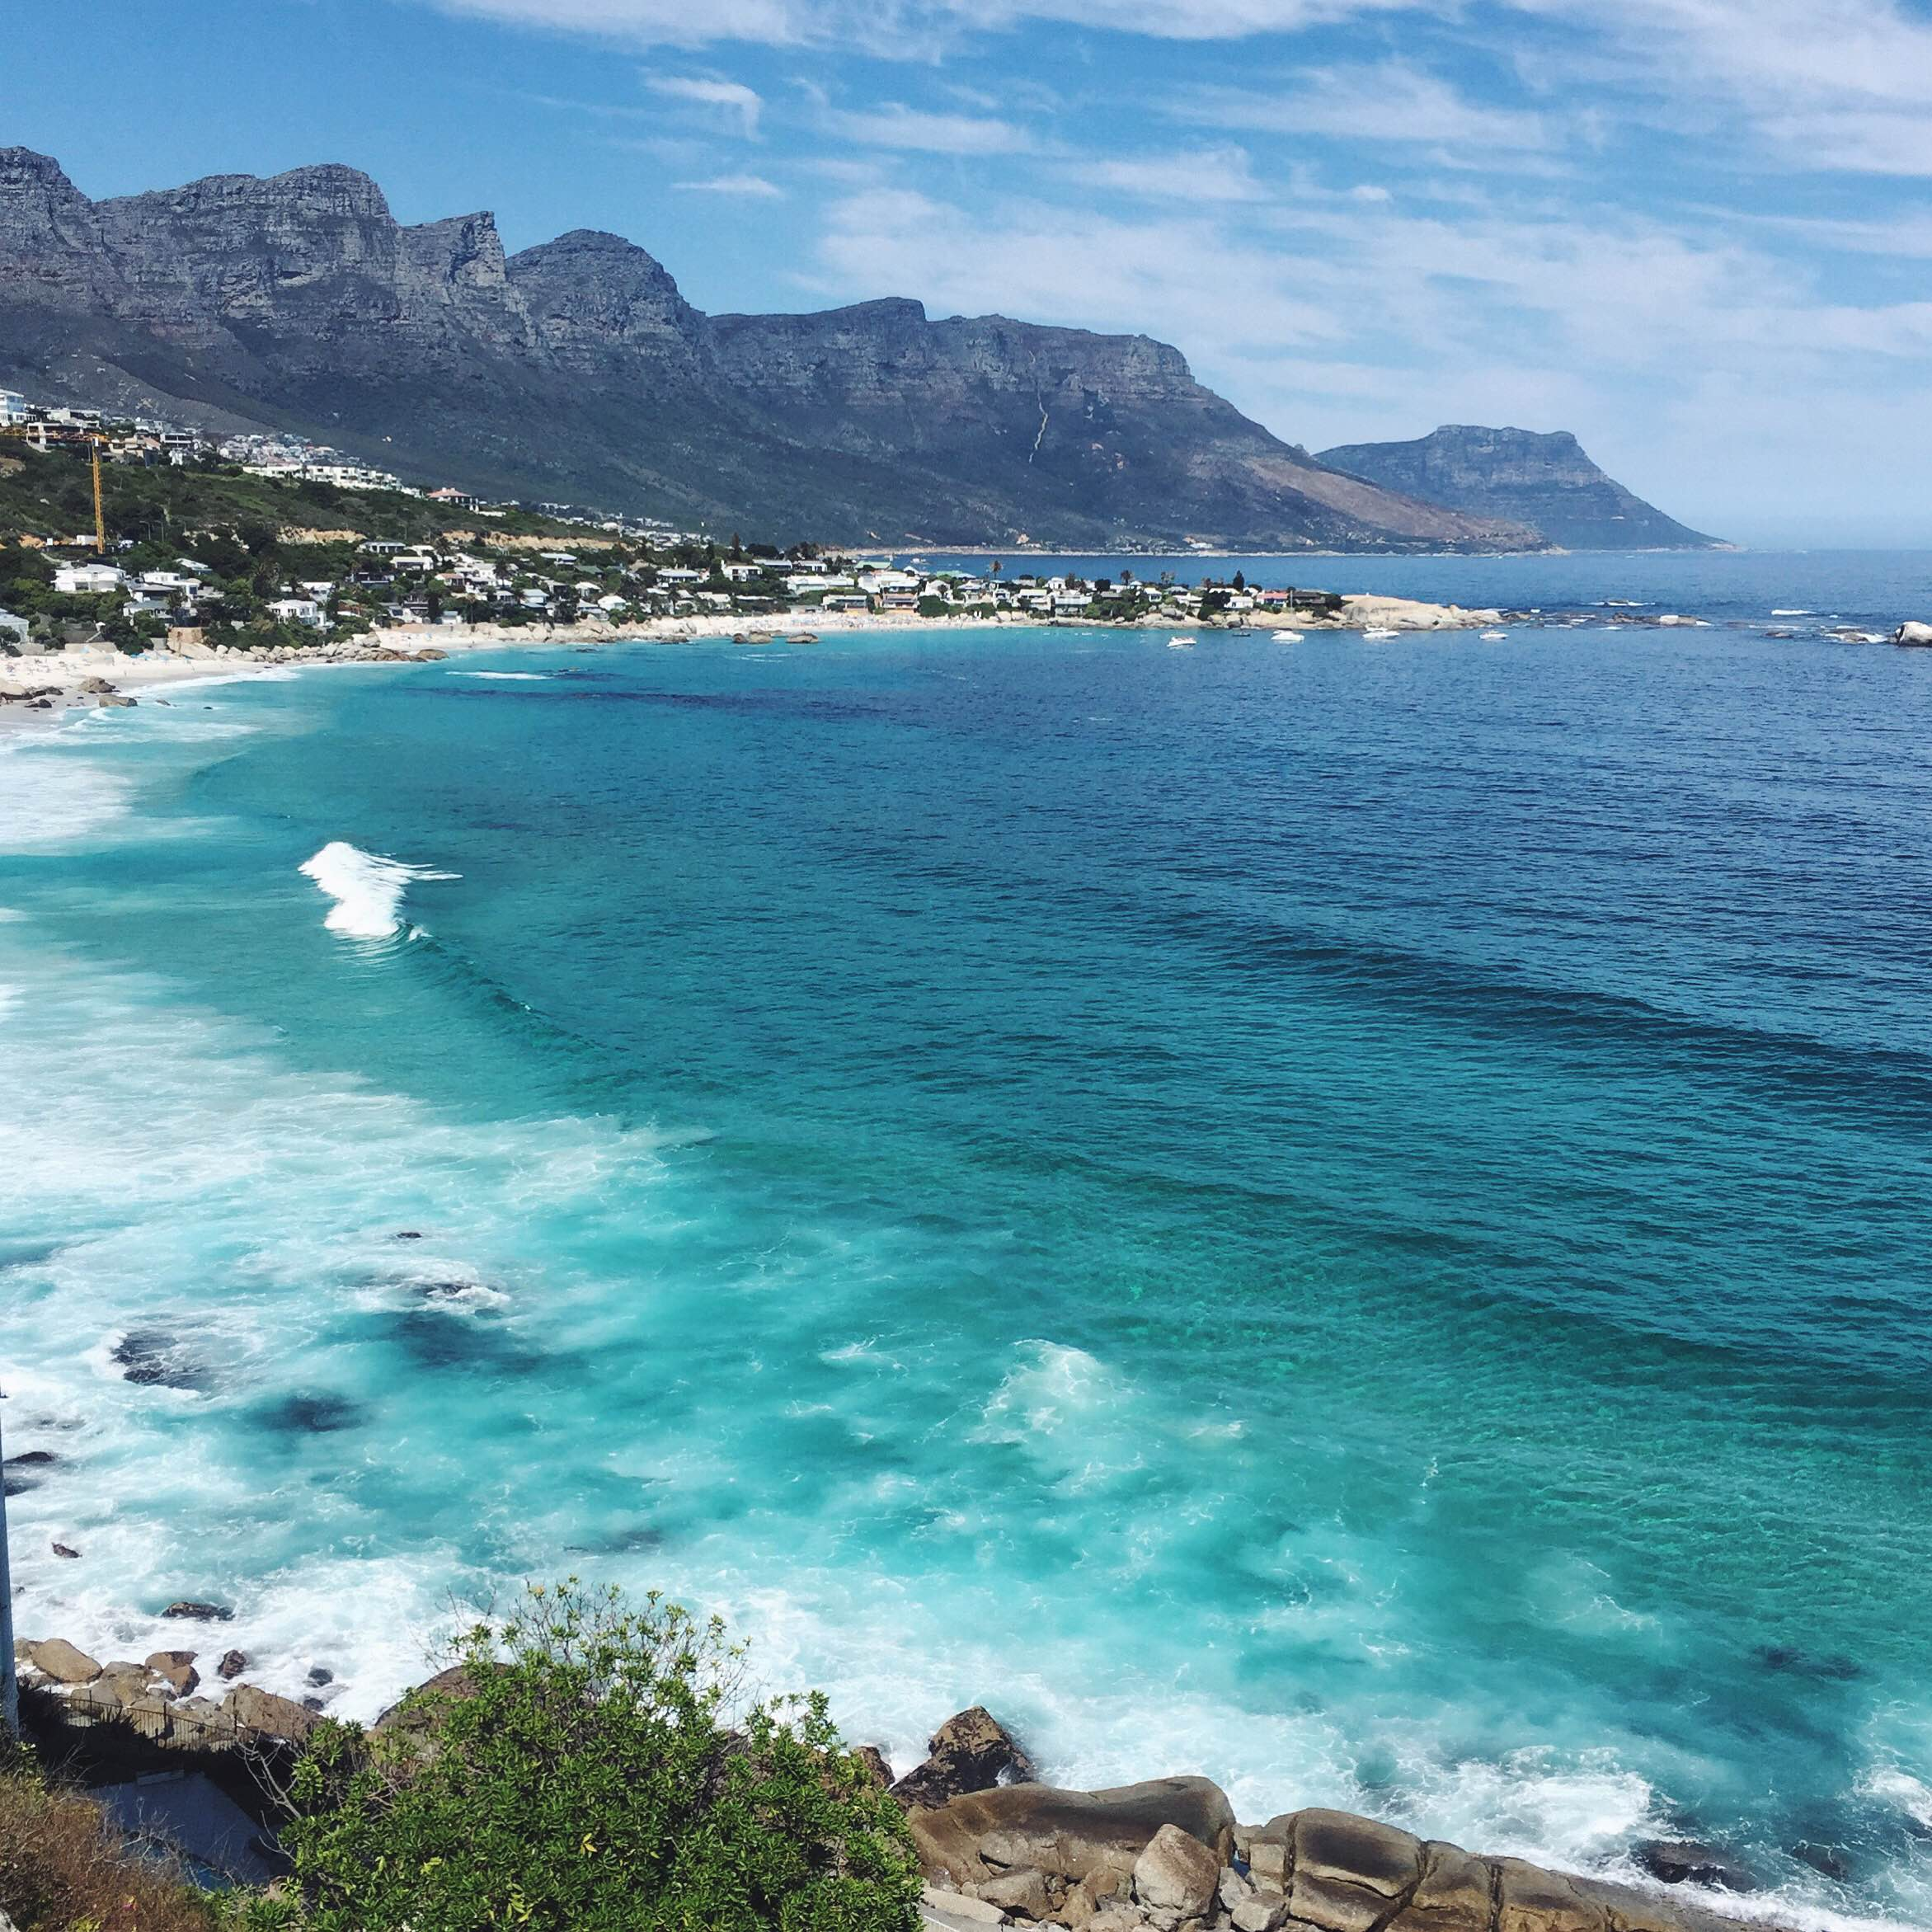 Greetings From the Sunny Cape Town